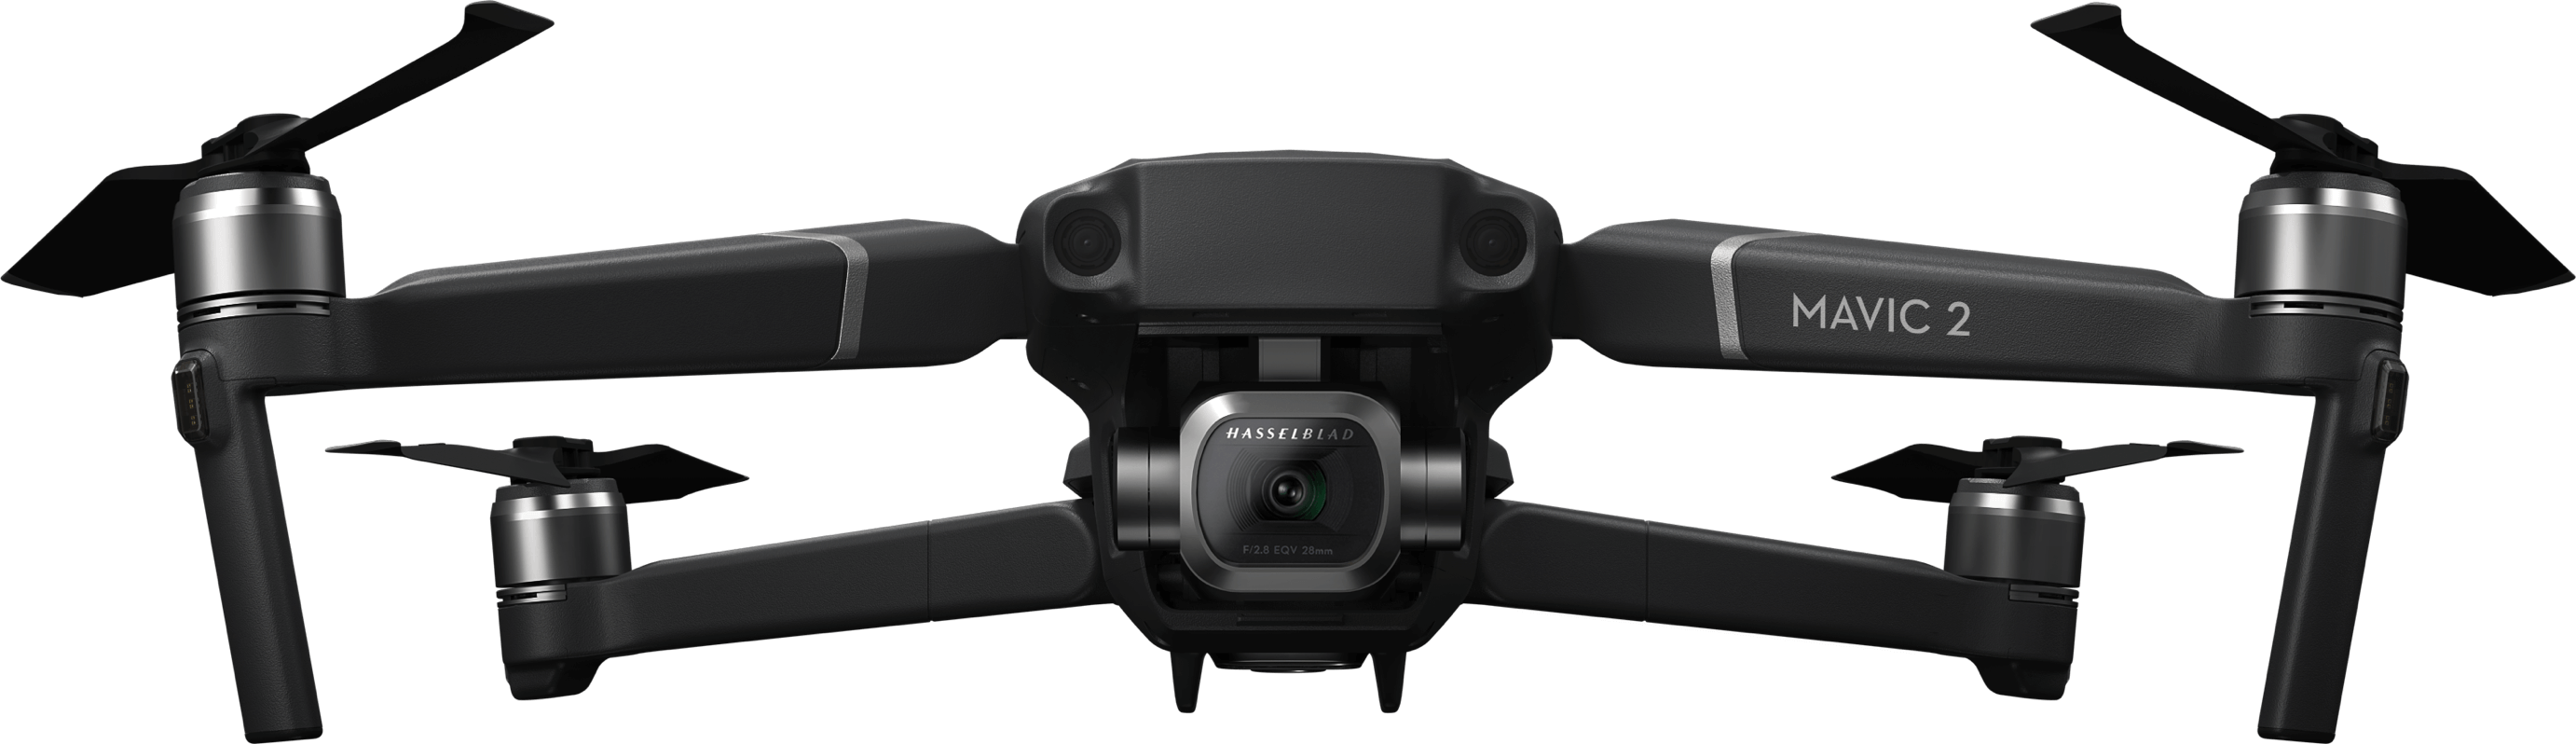 https://www3.djicdn.com/assets/images/products/supernova/s4/s4-pro-327837106caf7f03d379e99ed09ebdb3.png?from=cdnMap